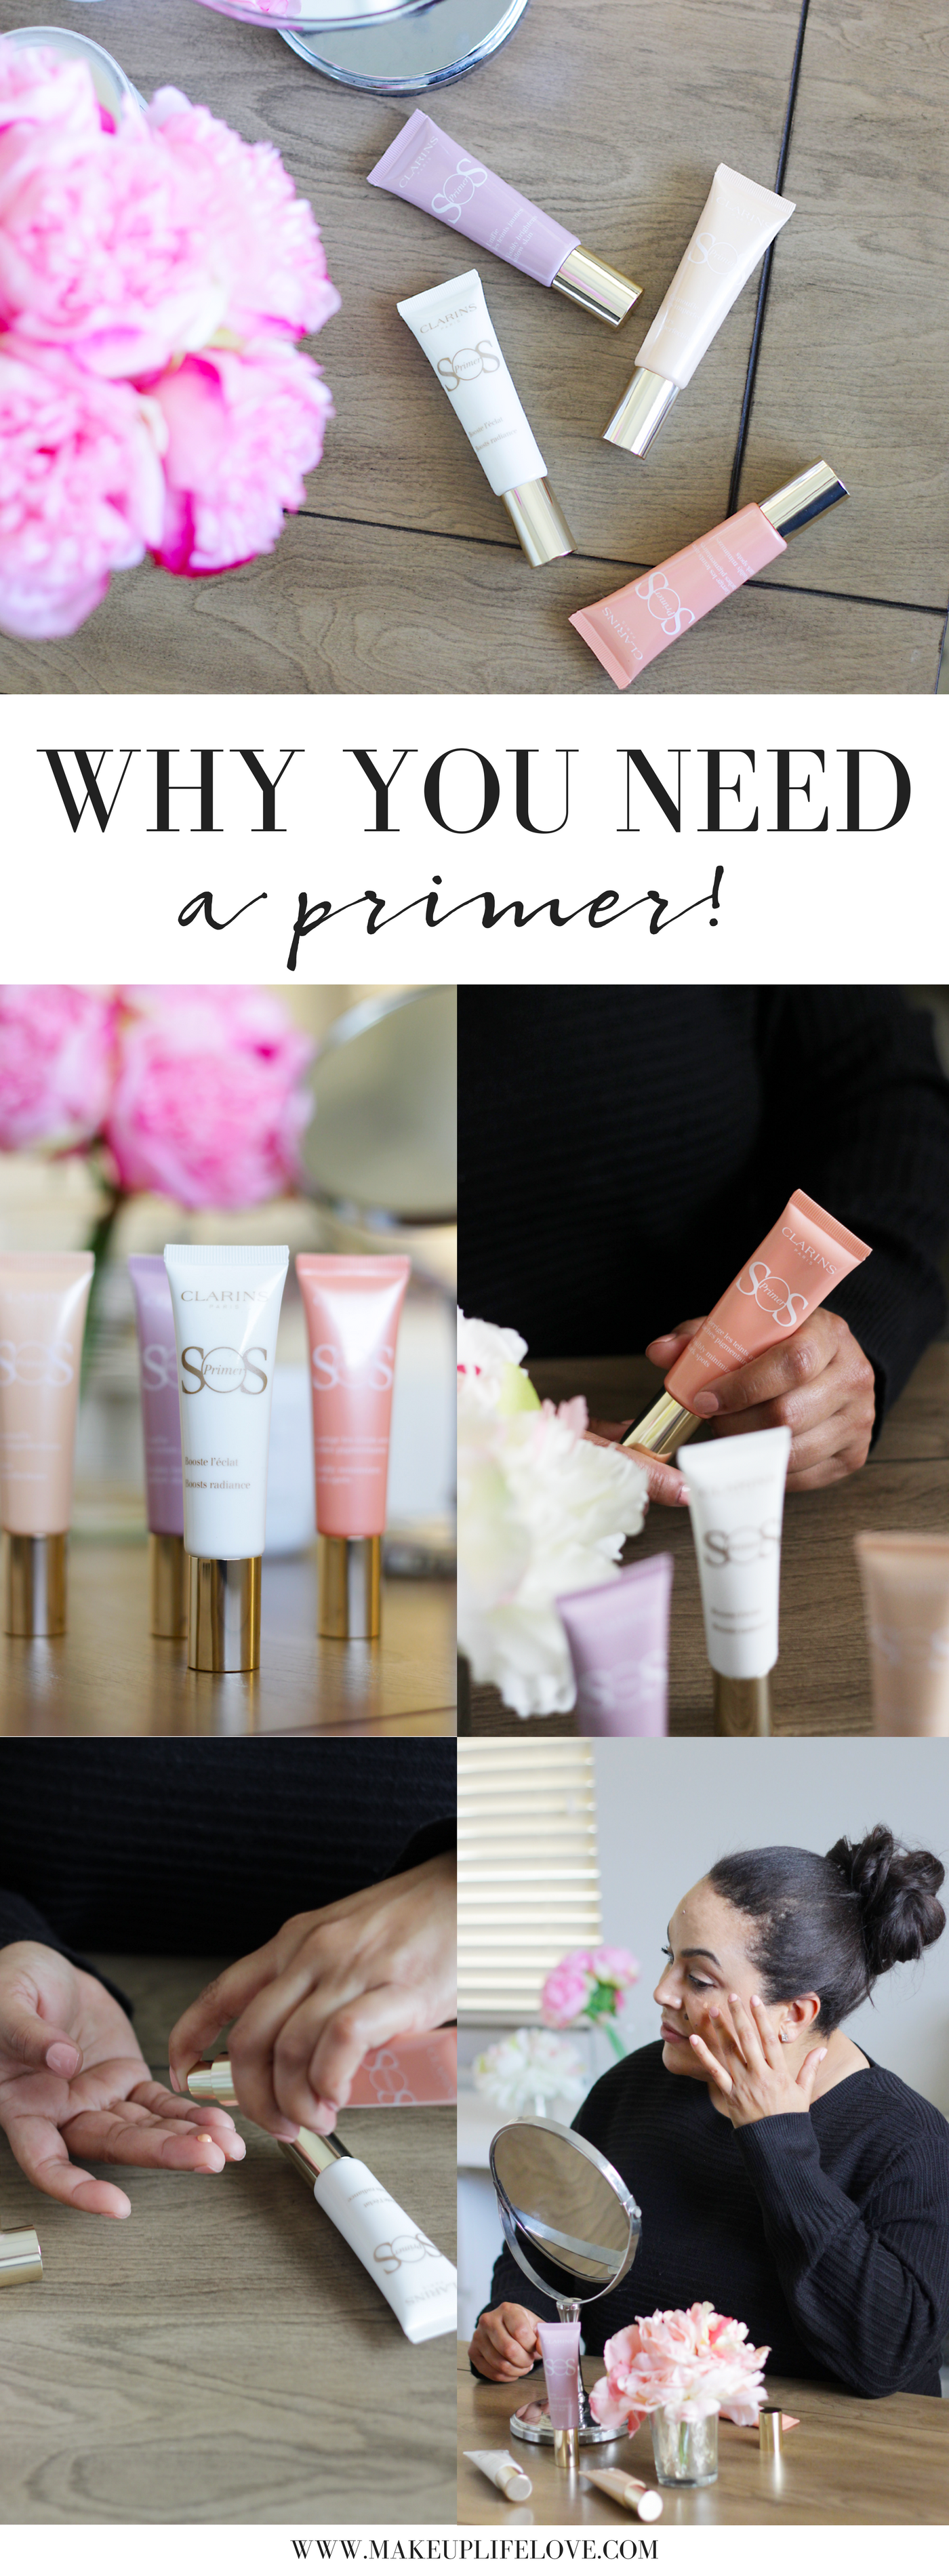 Bookmark this! Makeup Life Love shares Why You Need a Primer. Curious what primer is perfect for you? Keep reading to see what primer is best for your skin type!